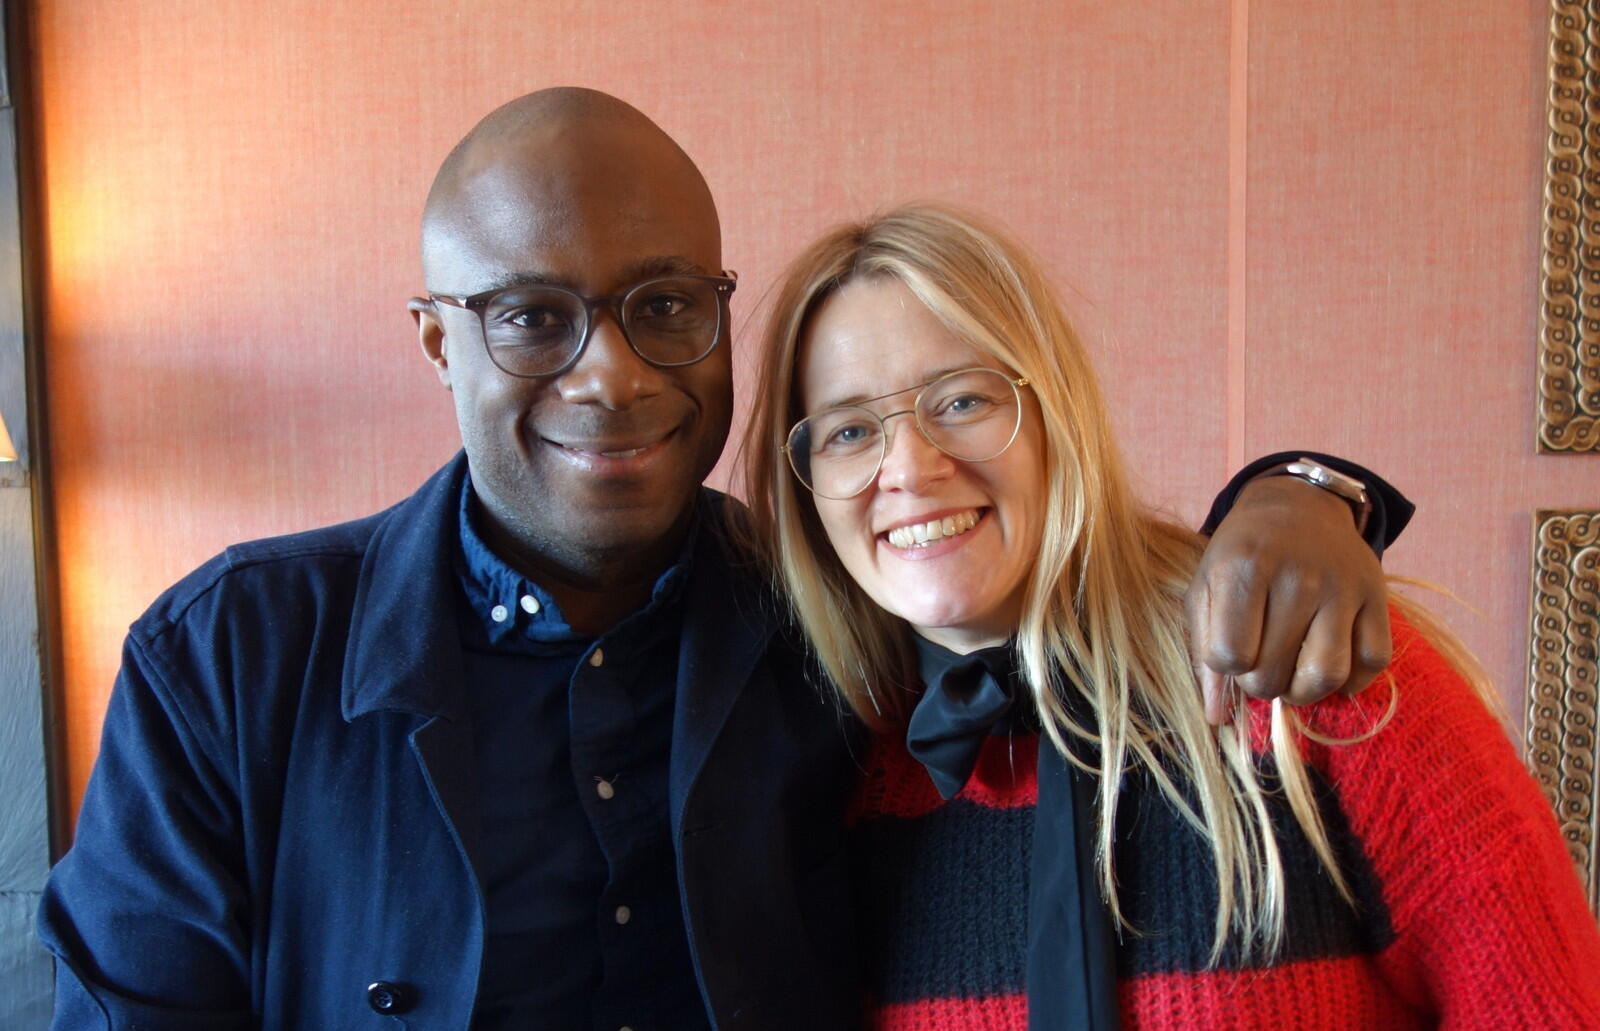 Episode 127: Barry Jenkins On The Music Of Moonlight & If Beale Street Could Talk